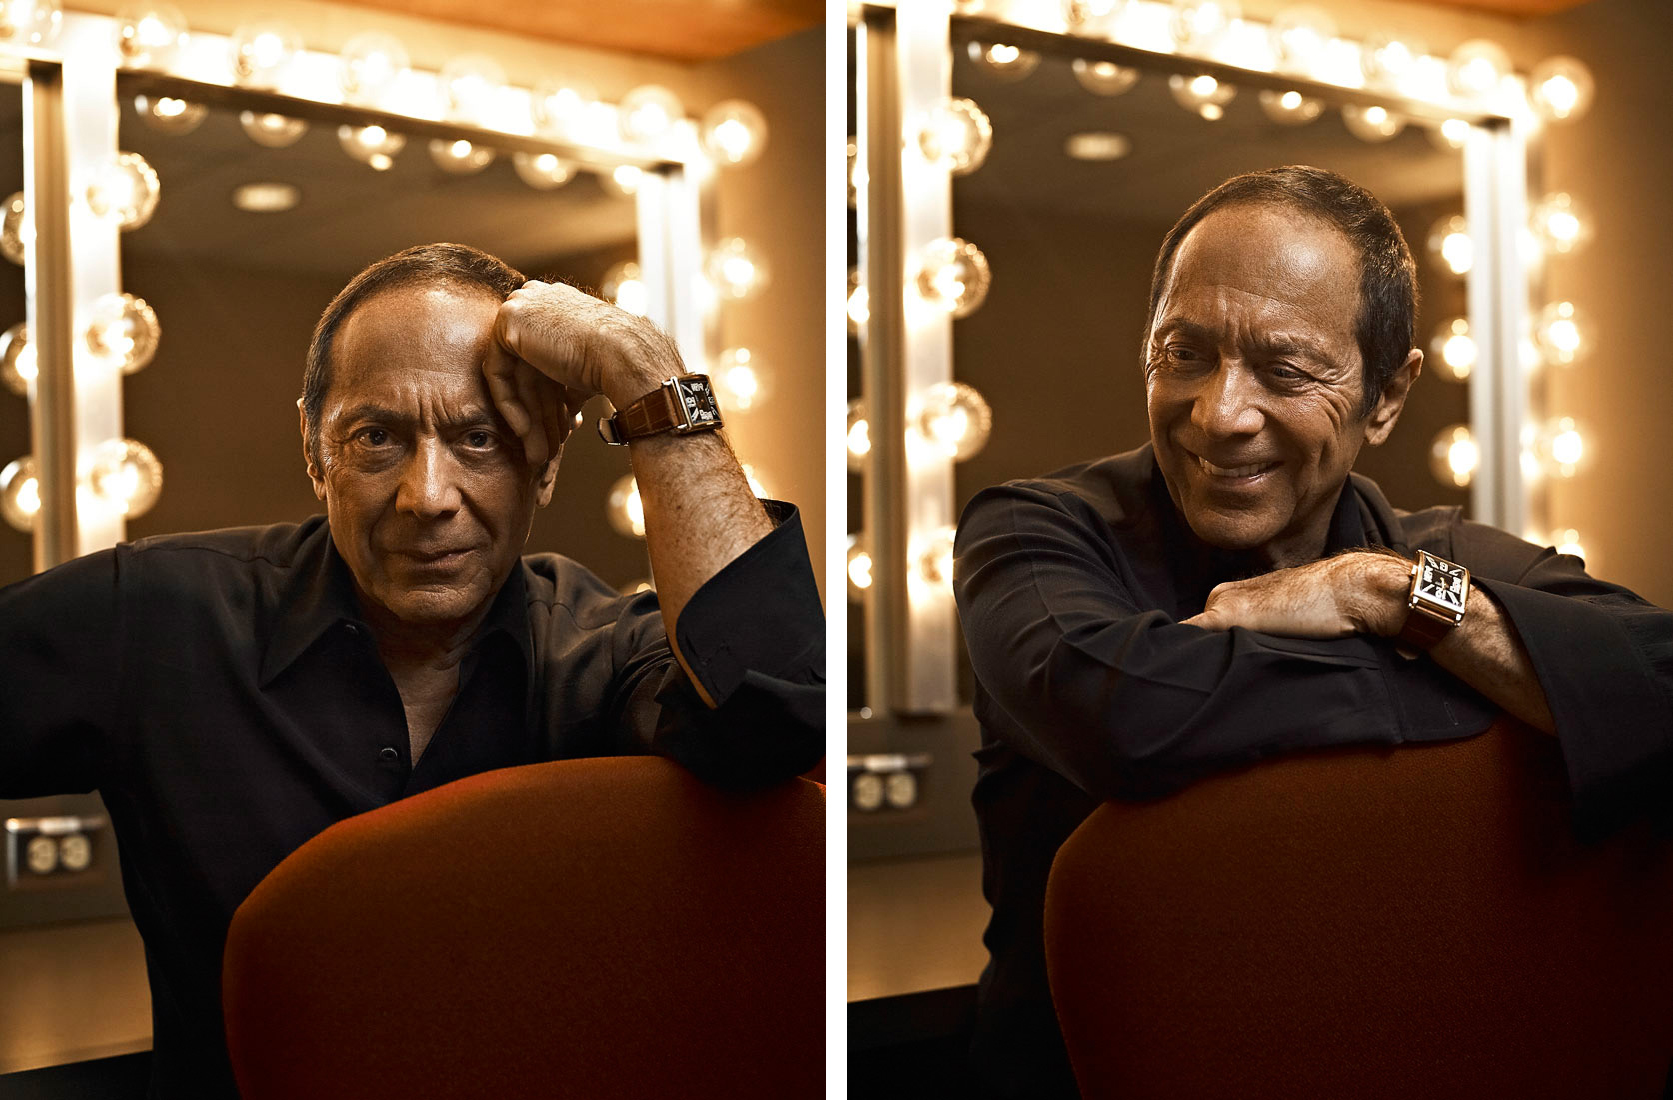 Singer Songwriter Paul Anka post concert by Vancouver Celebrity Editorial Photographer